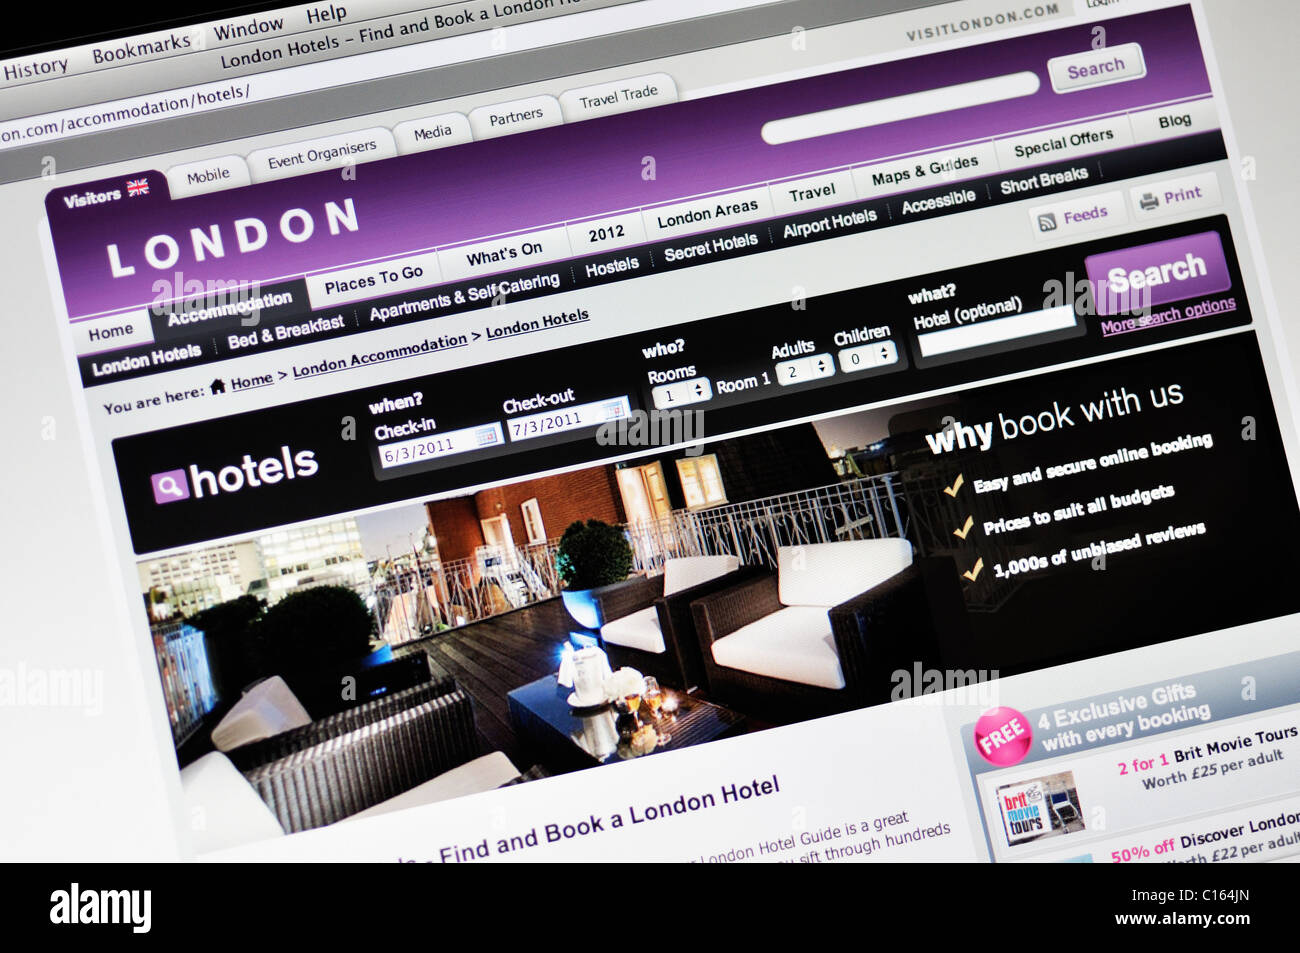 London hotel booking and tourist guide website - Stock Image